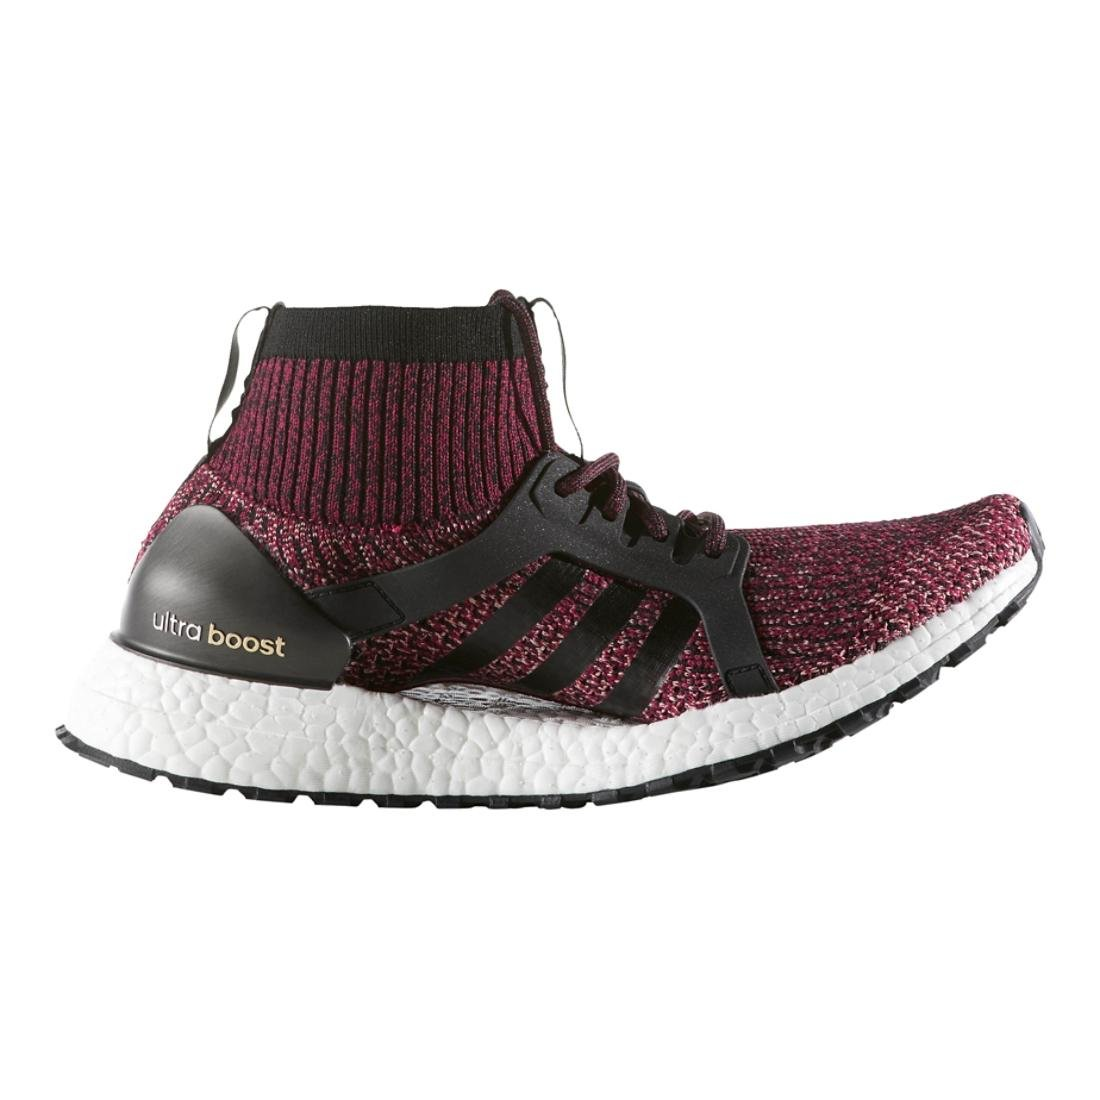 a6ad0e5b6d0a5 Galleon - Adidas Running Women s Ultraboost X All Terrain Mystery Ruby Core  Black Trace Pink 10.5 B US